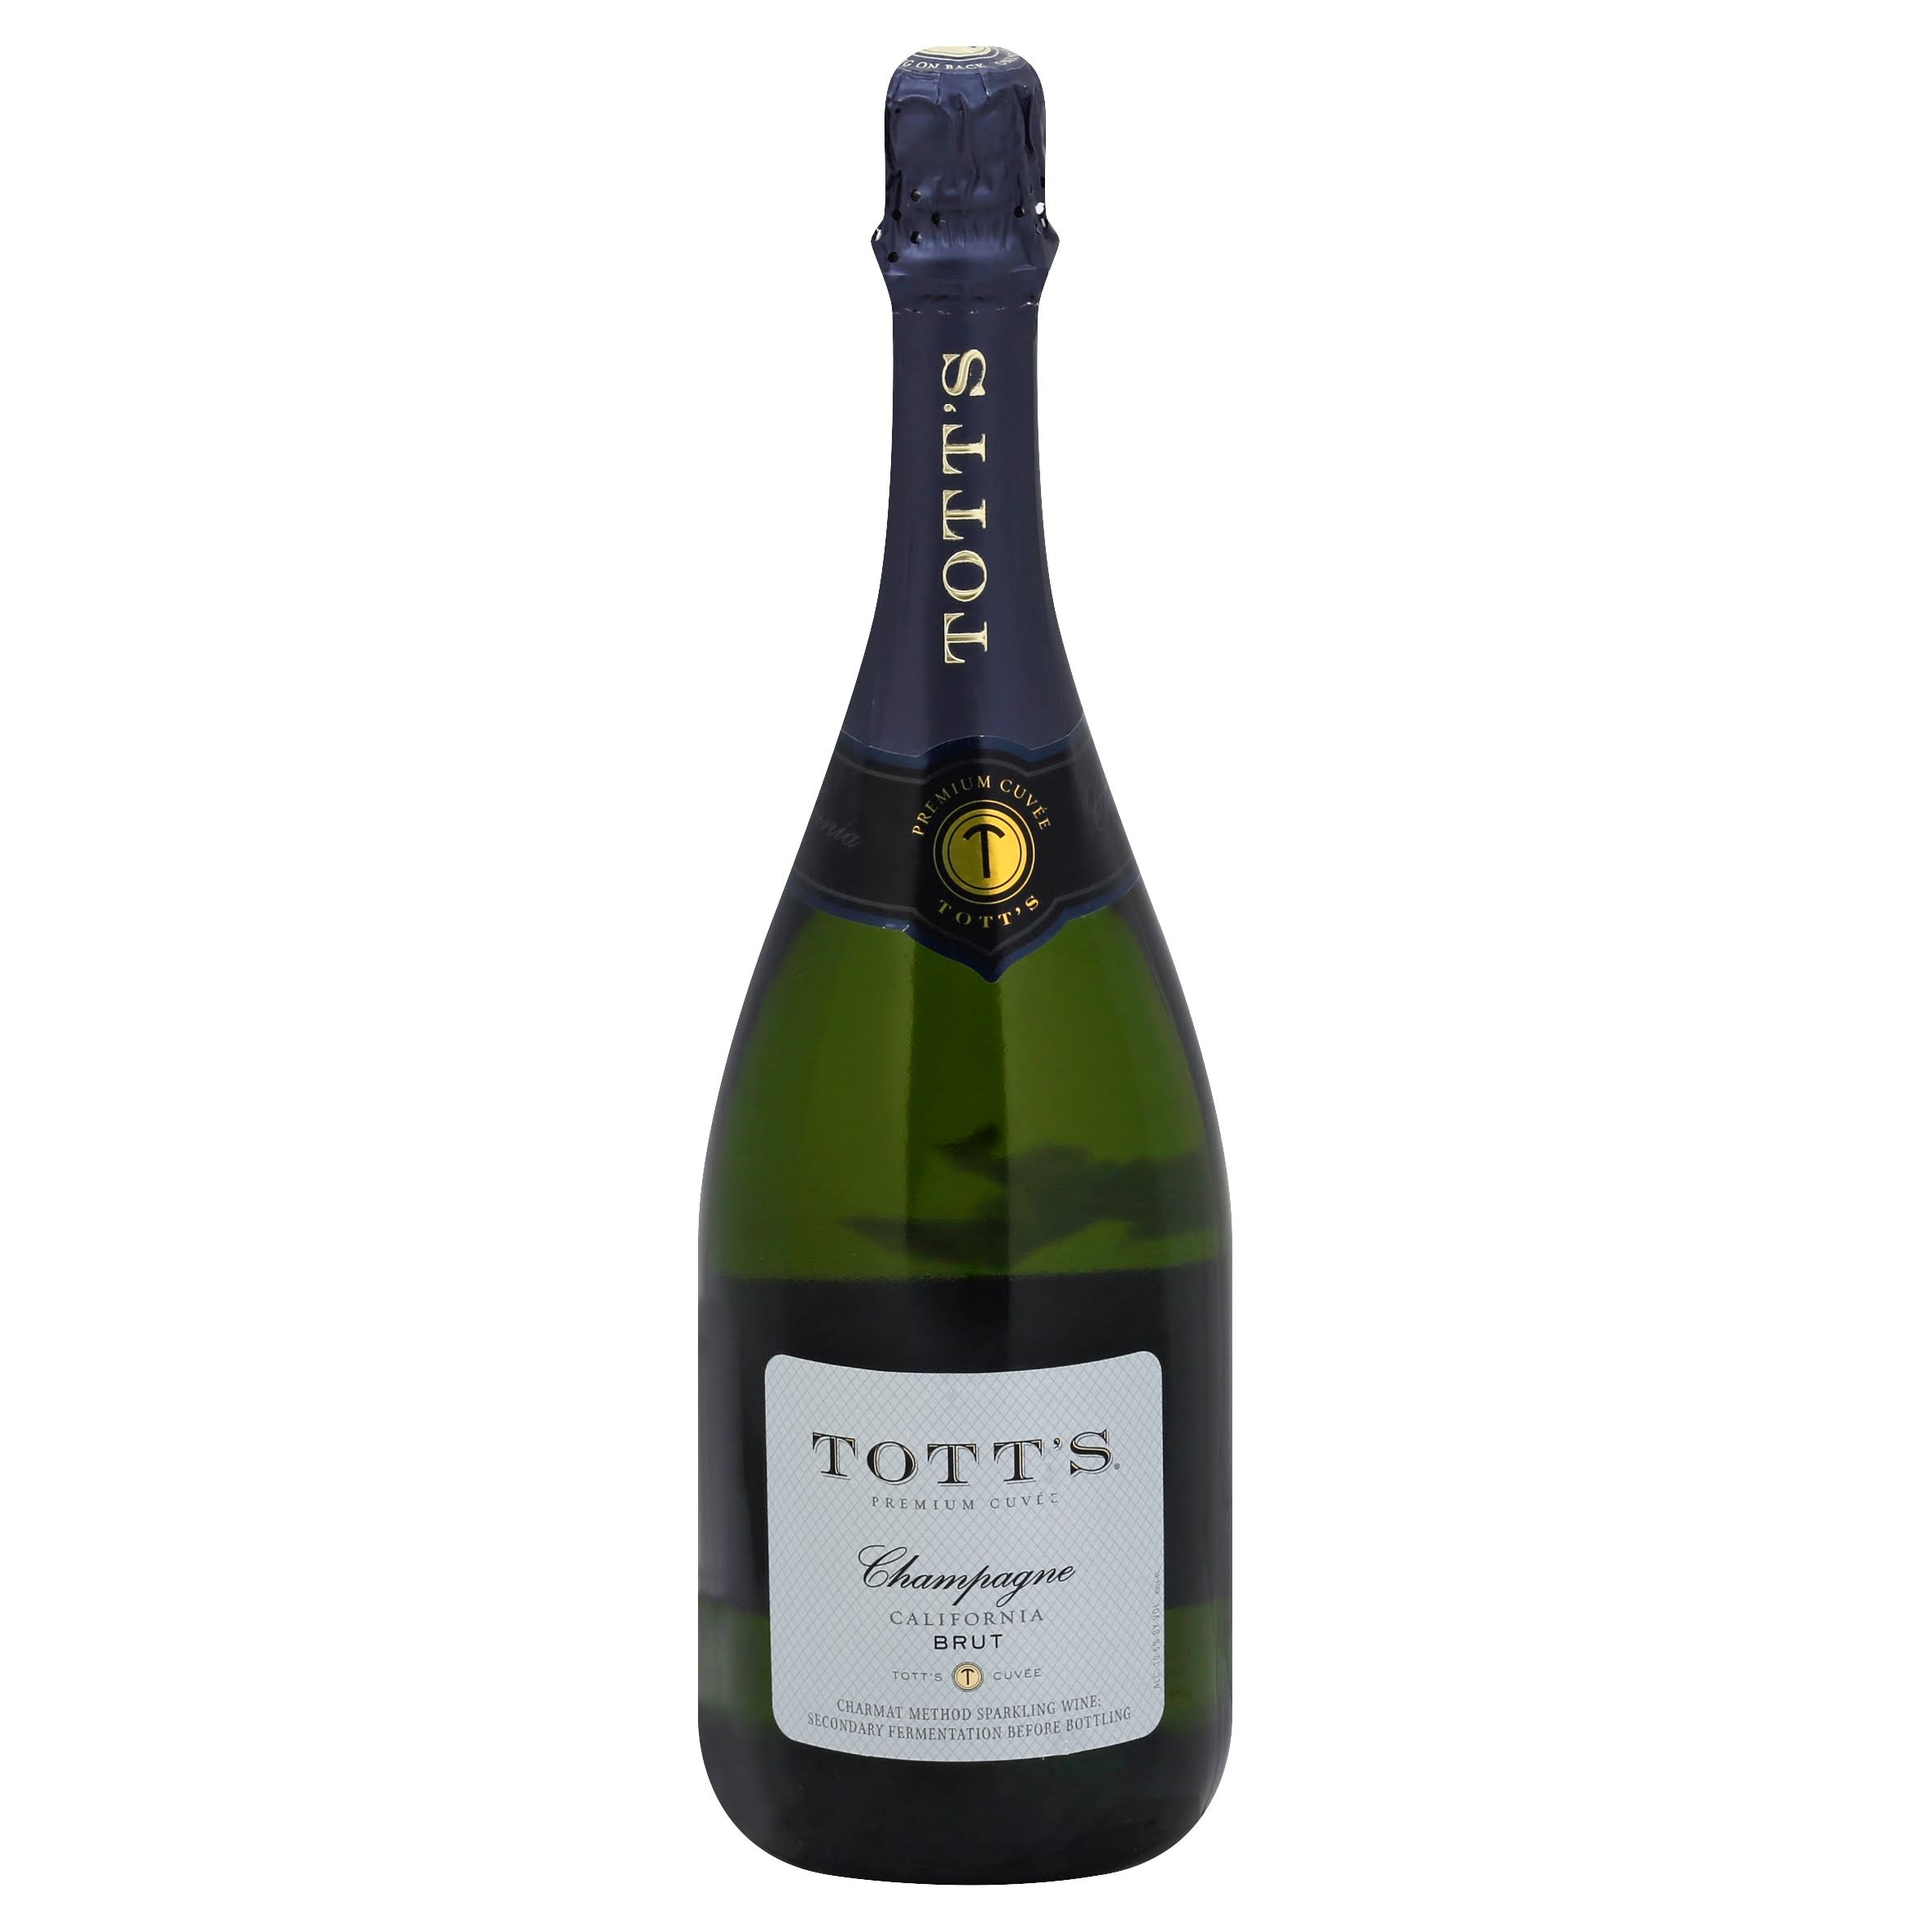 Tott's Brut Champagne, California (Vintage Varies) - 750 ml bottle